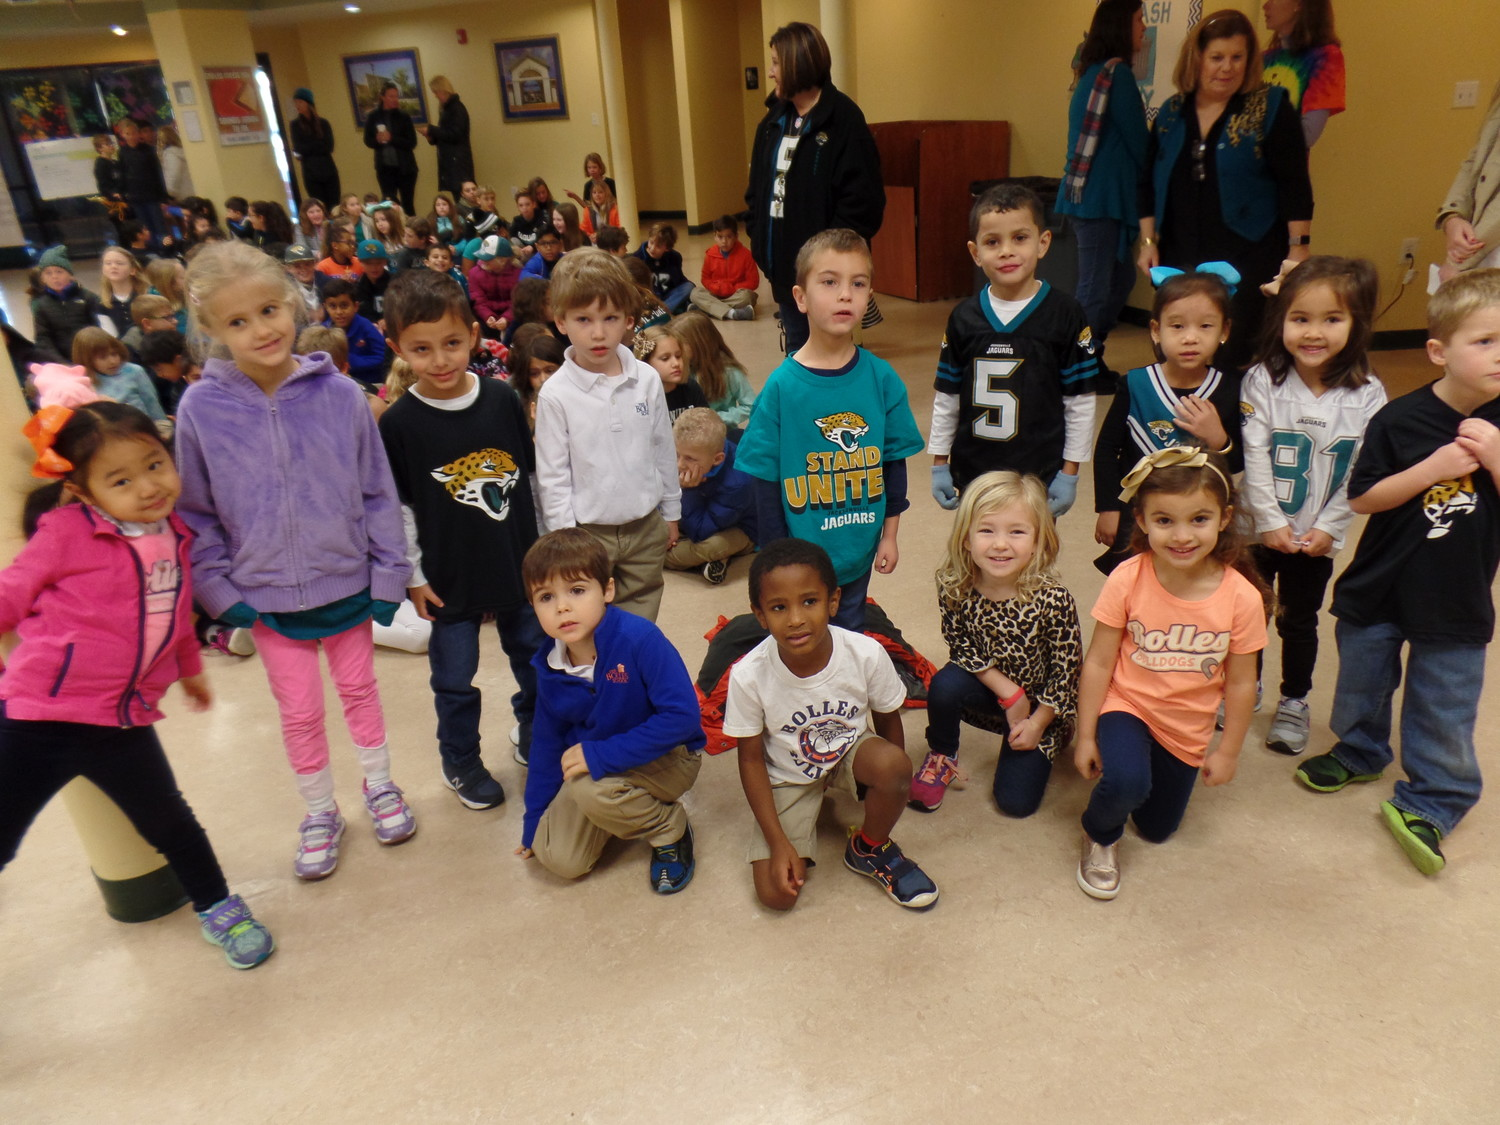 "The Bolles Lower School Ponte Vedra Beach Campus wore more teal and black than orange and blue Friday, Jan. 19, during the school's Jaguars Spirit Day leading up to the team's AFC Championship matchup with the New England Patriots. At the direction of Ponte Vedra Beach Campus Head Peggy Campbell-Rush, students and faculty convened in Ponte Vedra Hall after their flag ceremony for a group chant of ""We are Jaguars,"" and ""Duval."""